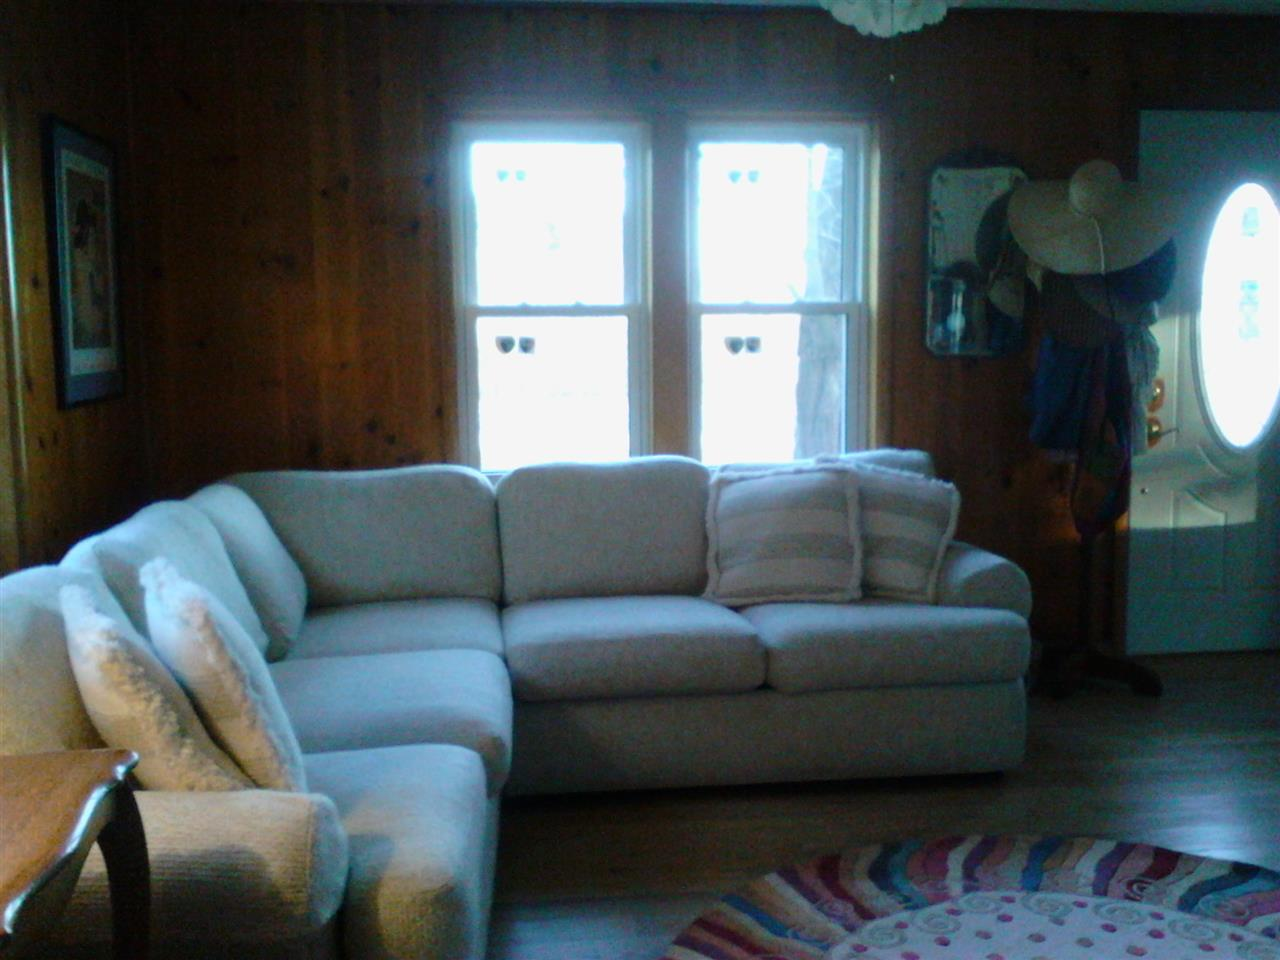 21911 HWY 21, Greenfield, WI 54660